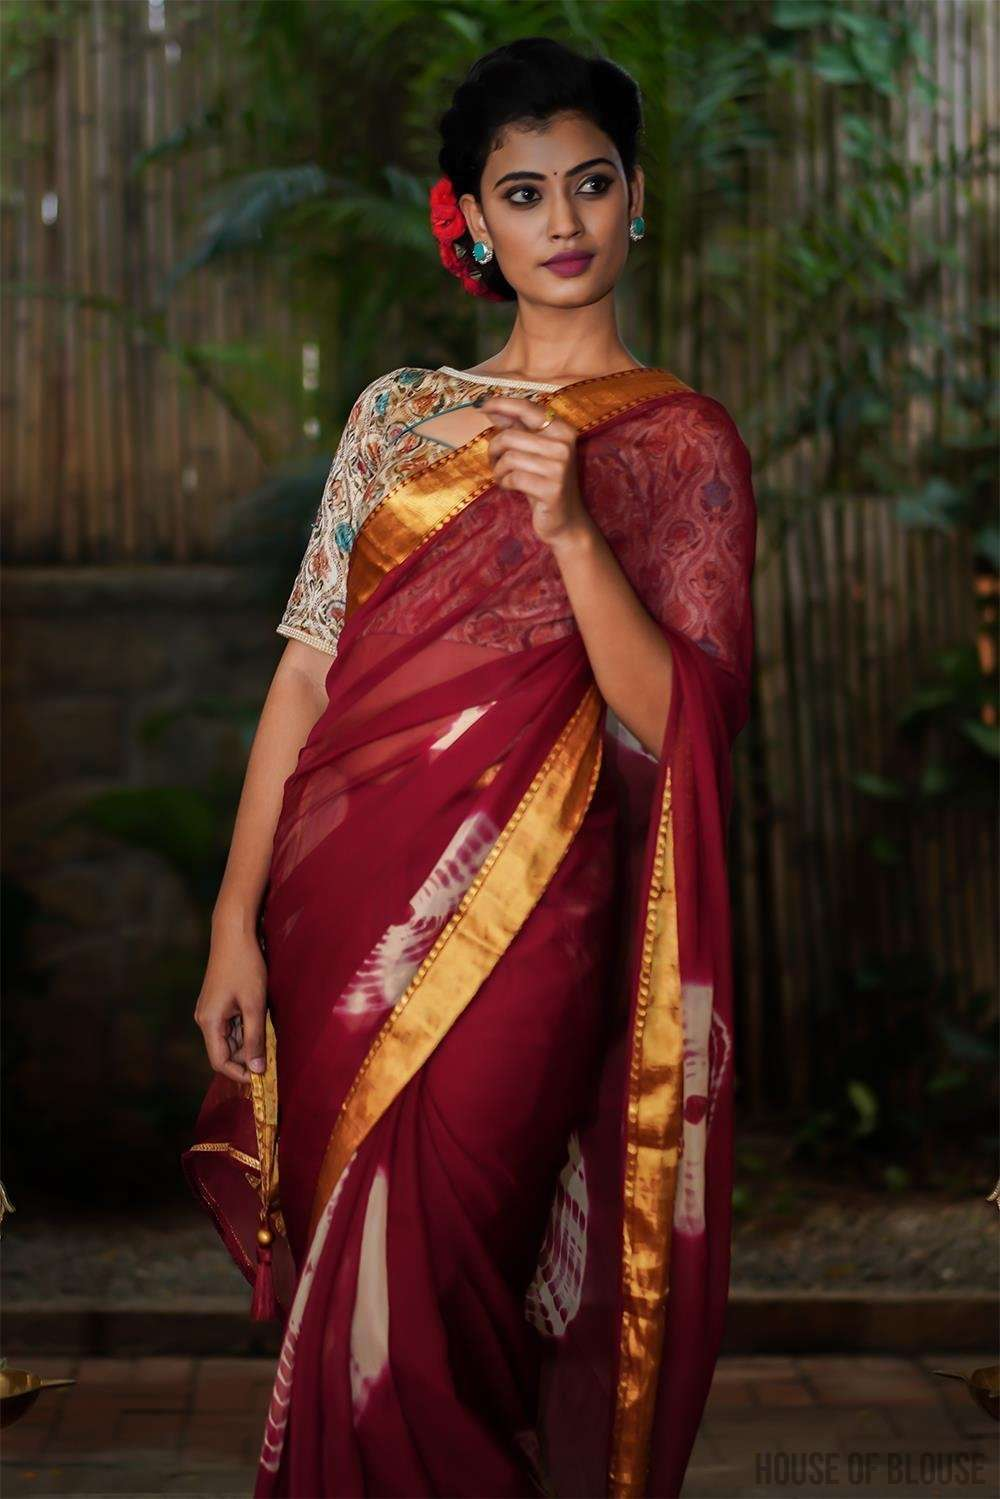 Maroon shibori dyed chiffon saree with zari border